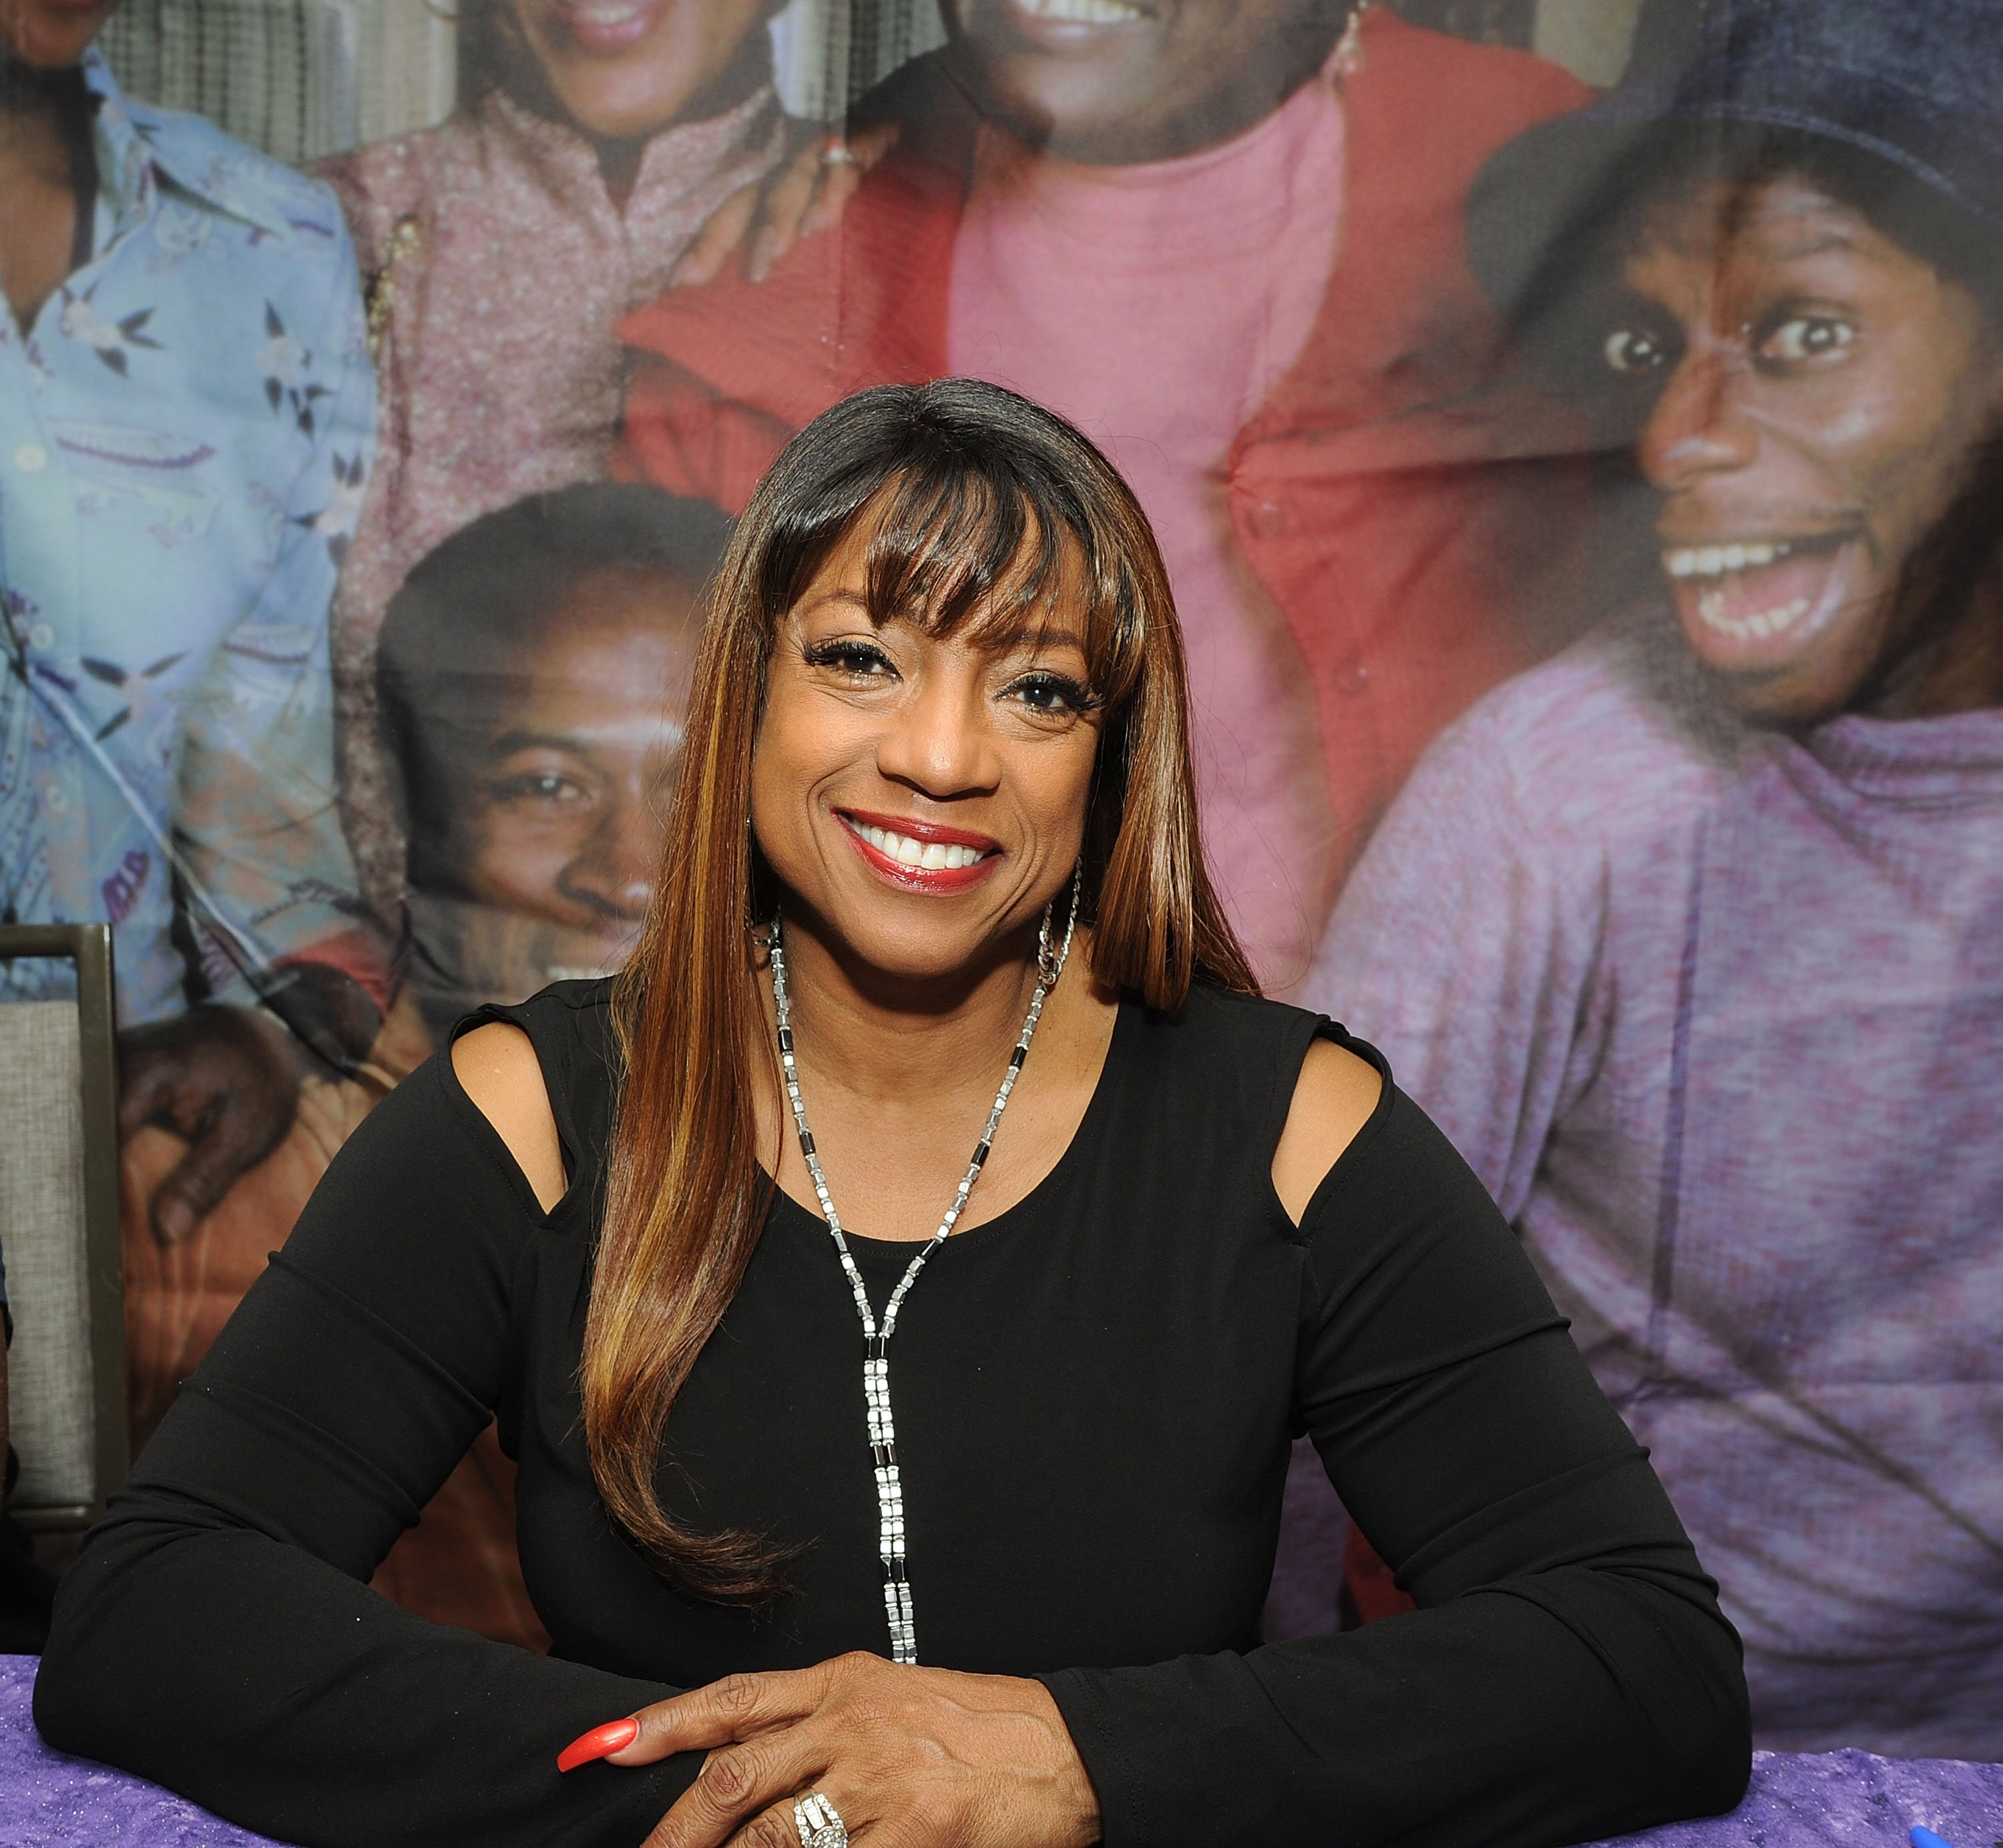 Bern Nadette Stanis attends the Chiller Theatre Expo Fall 2018 at Hilton Parsippany on October 26, 2018 | Photo: GettyImages